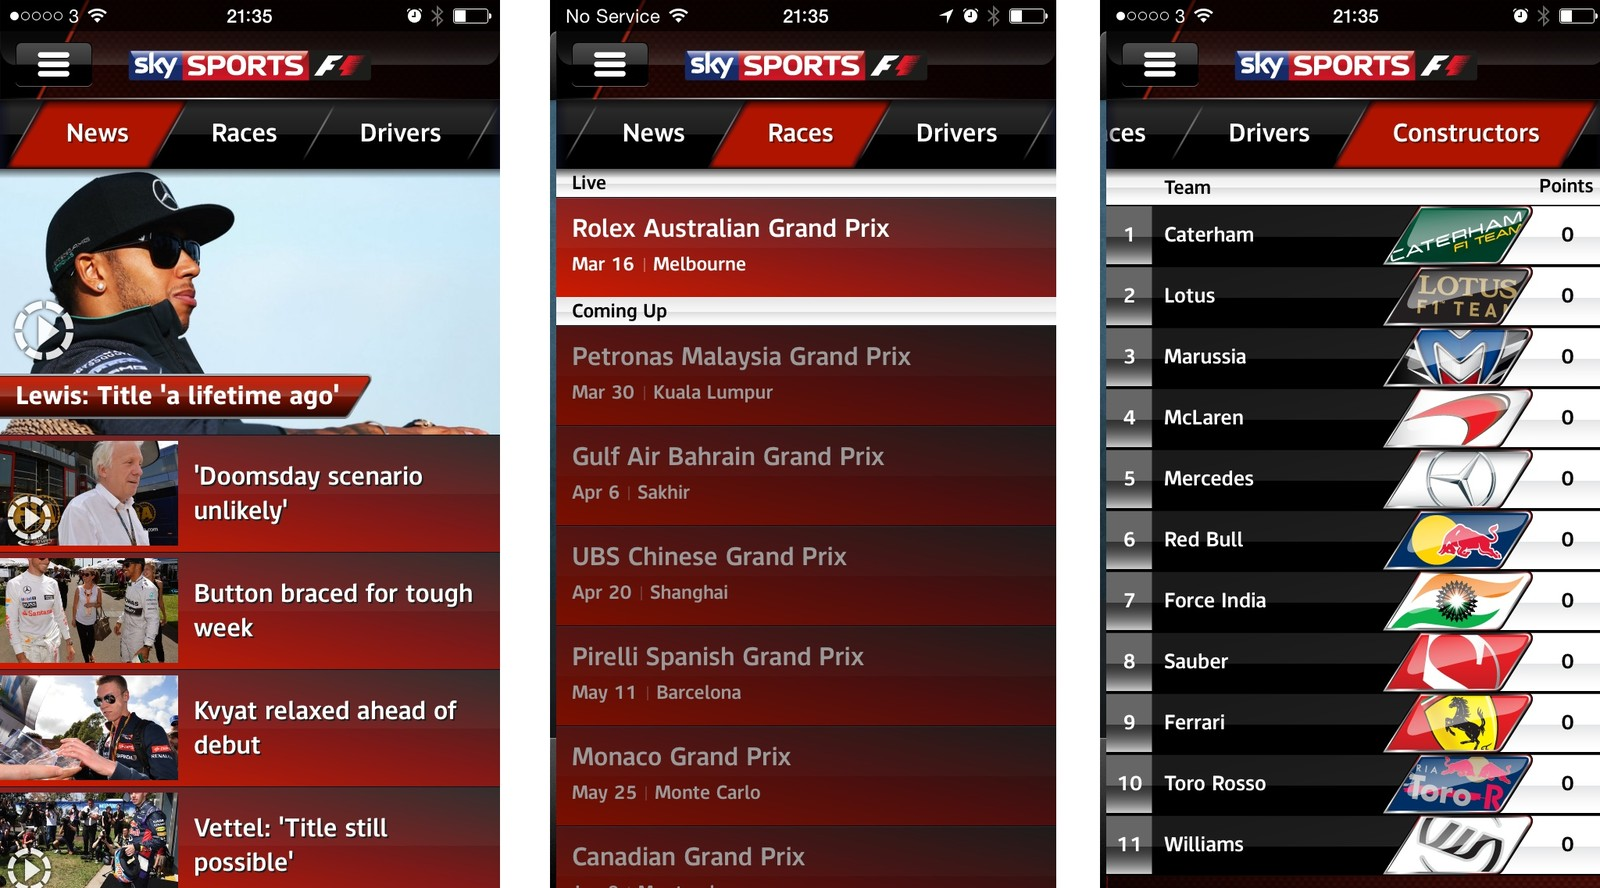 Sky Sports Mobile